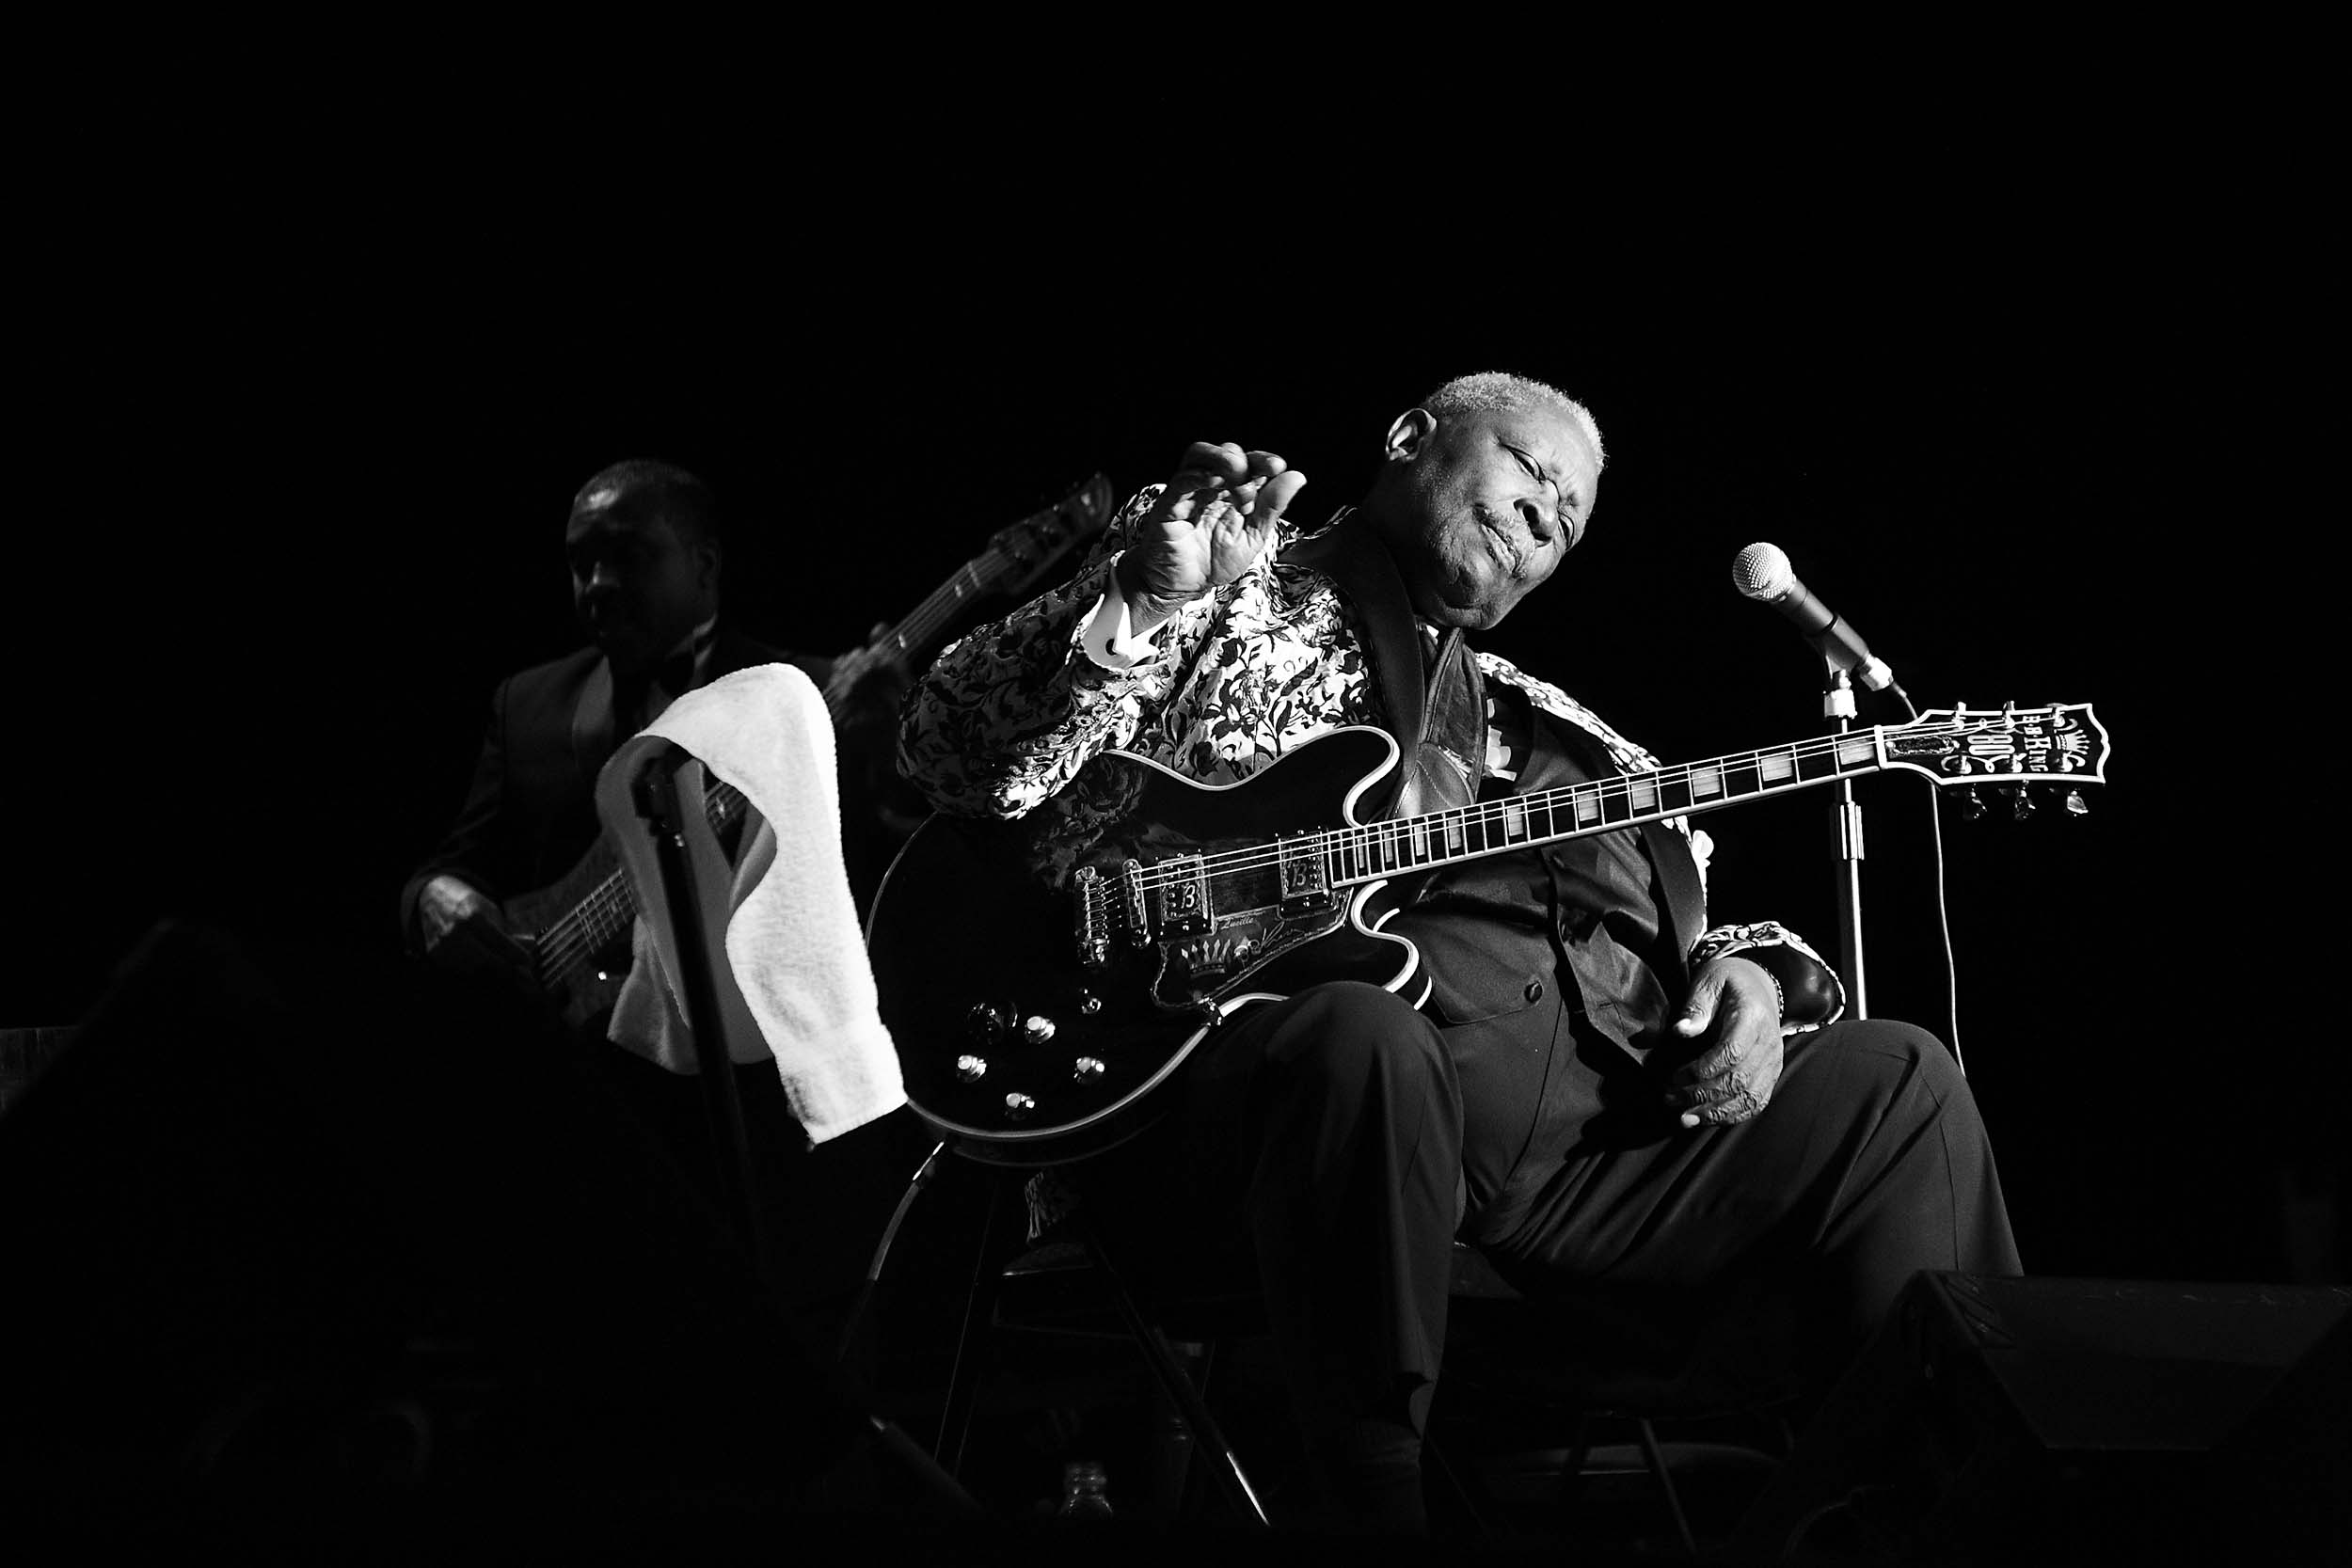 BB King B&W 1